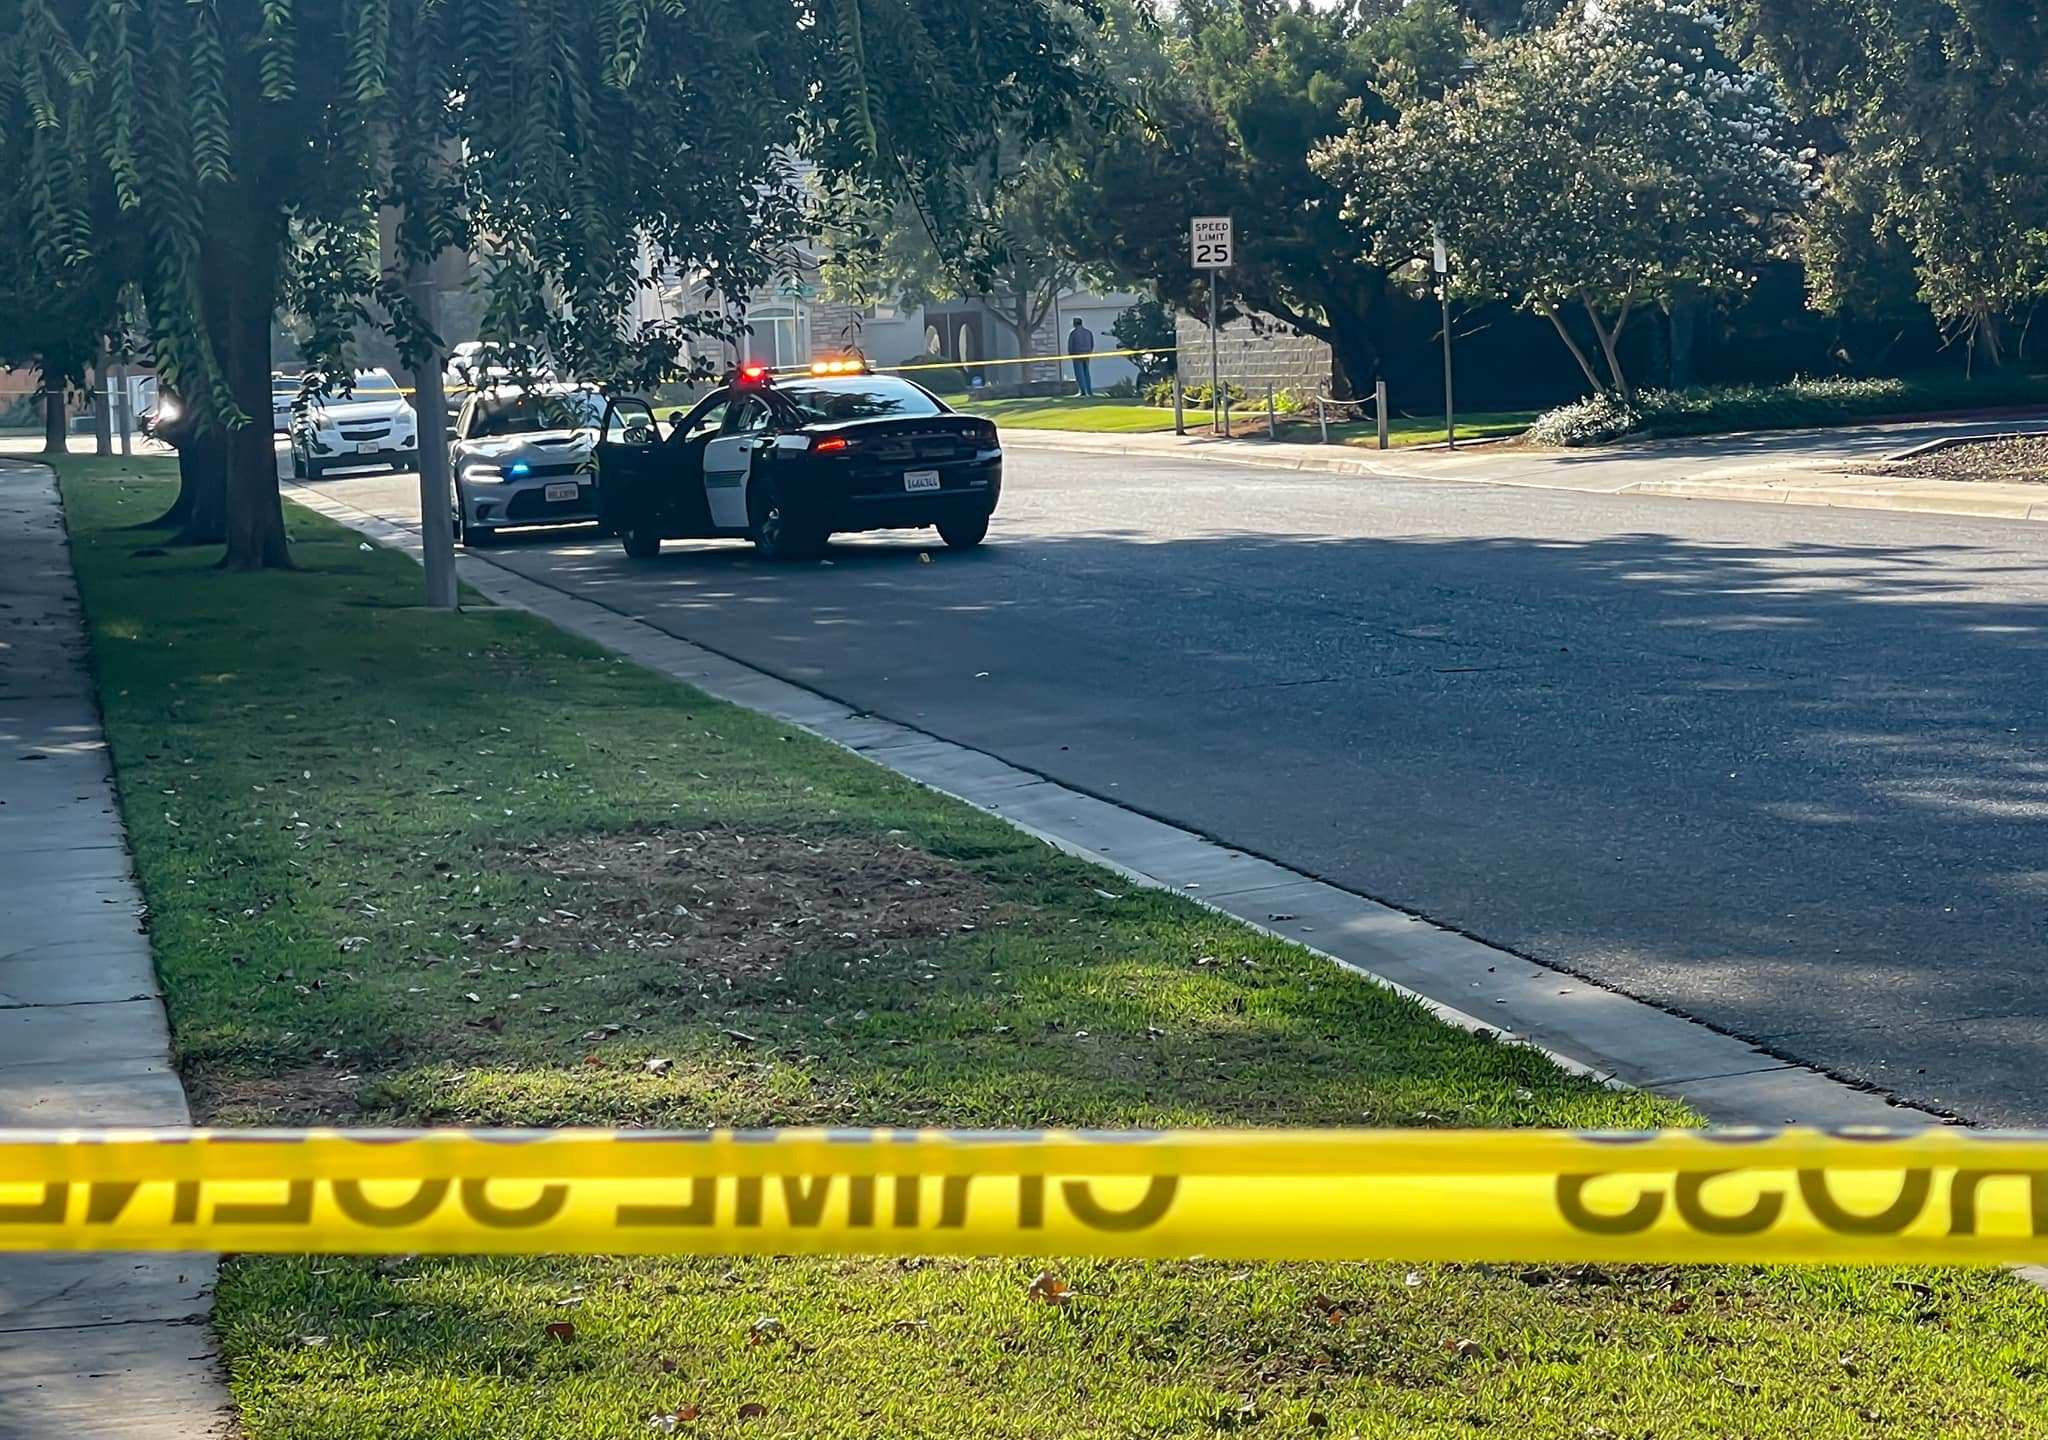 1 injured in Visalia shooting, search for suspect underway, police say